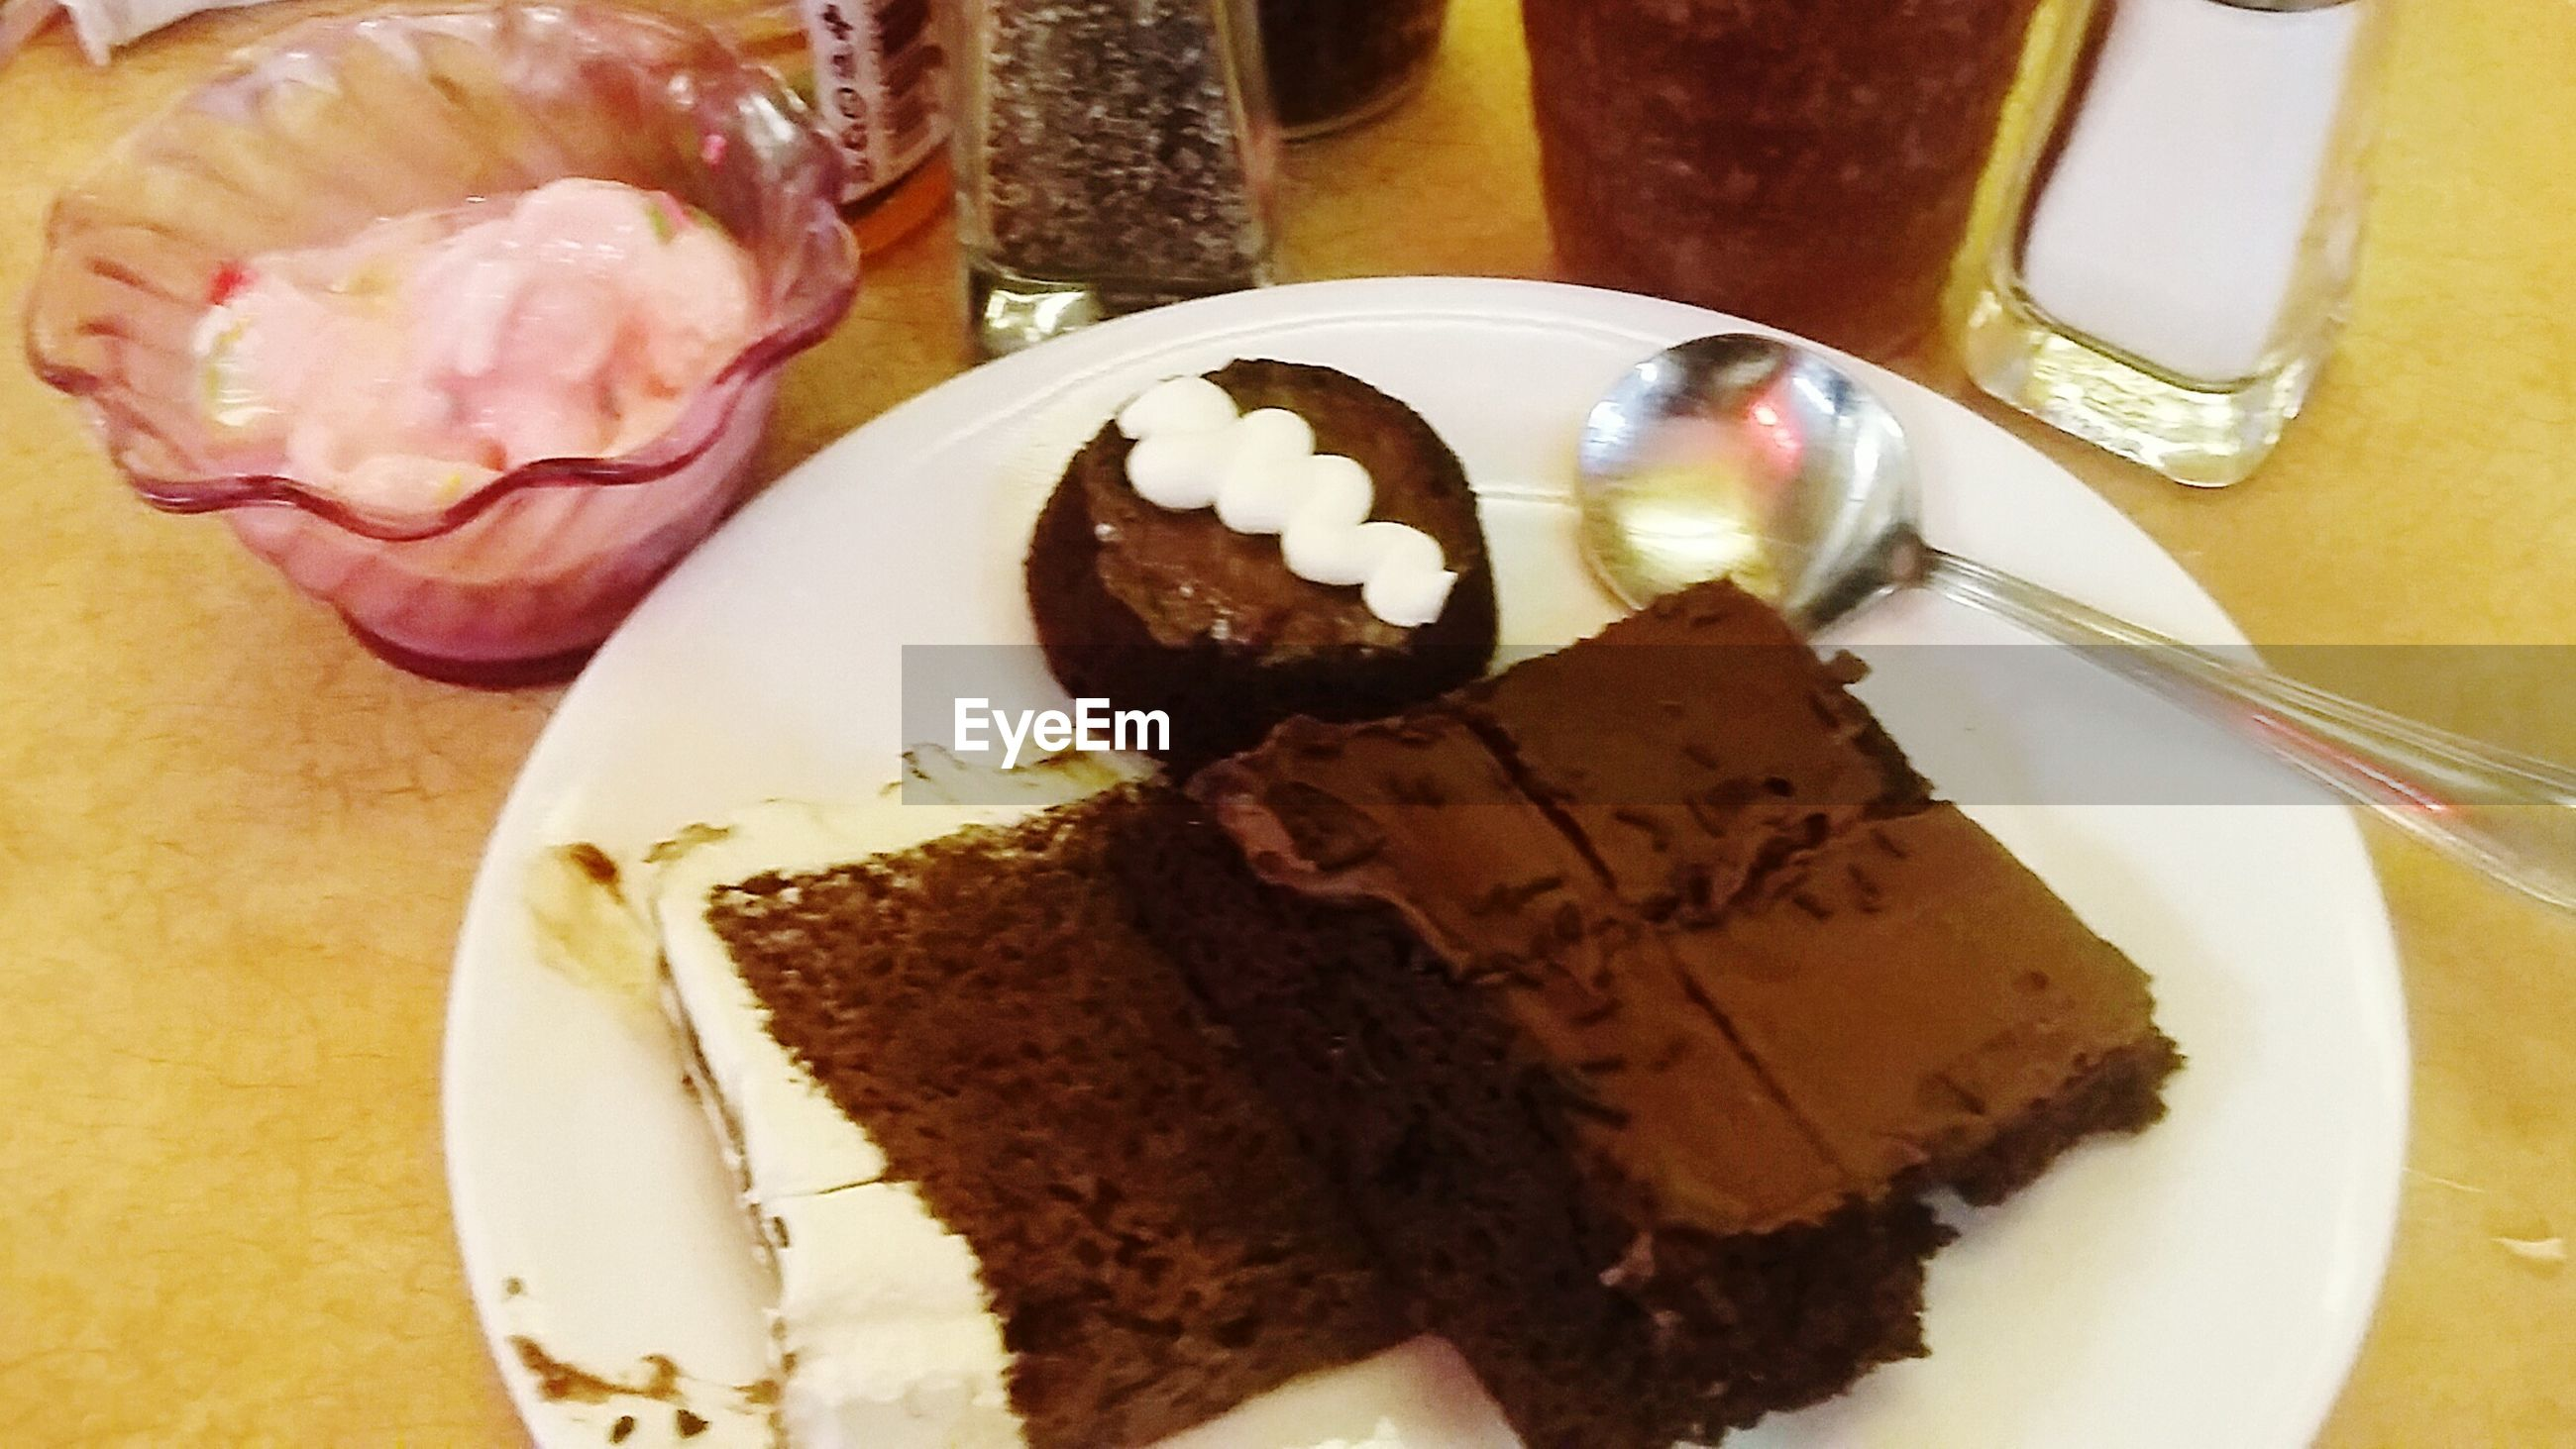 food and drink, food, freshness, sweet food, ready-to-eat, indoors, dessert, plate, indulgence, unhealthy eating, still life, table, cake, serving size, breakfast, high angle view, close-up, temptation, chocolate, bread